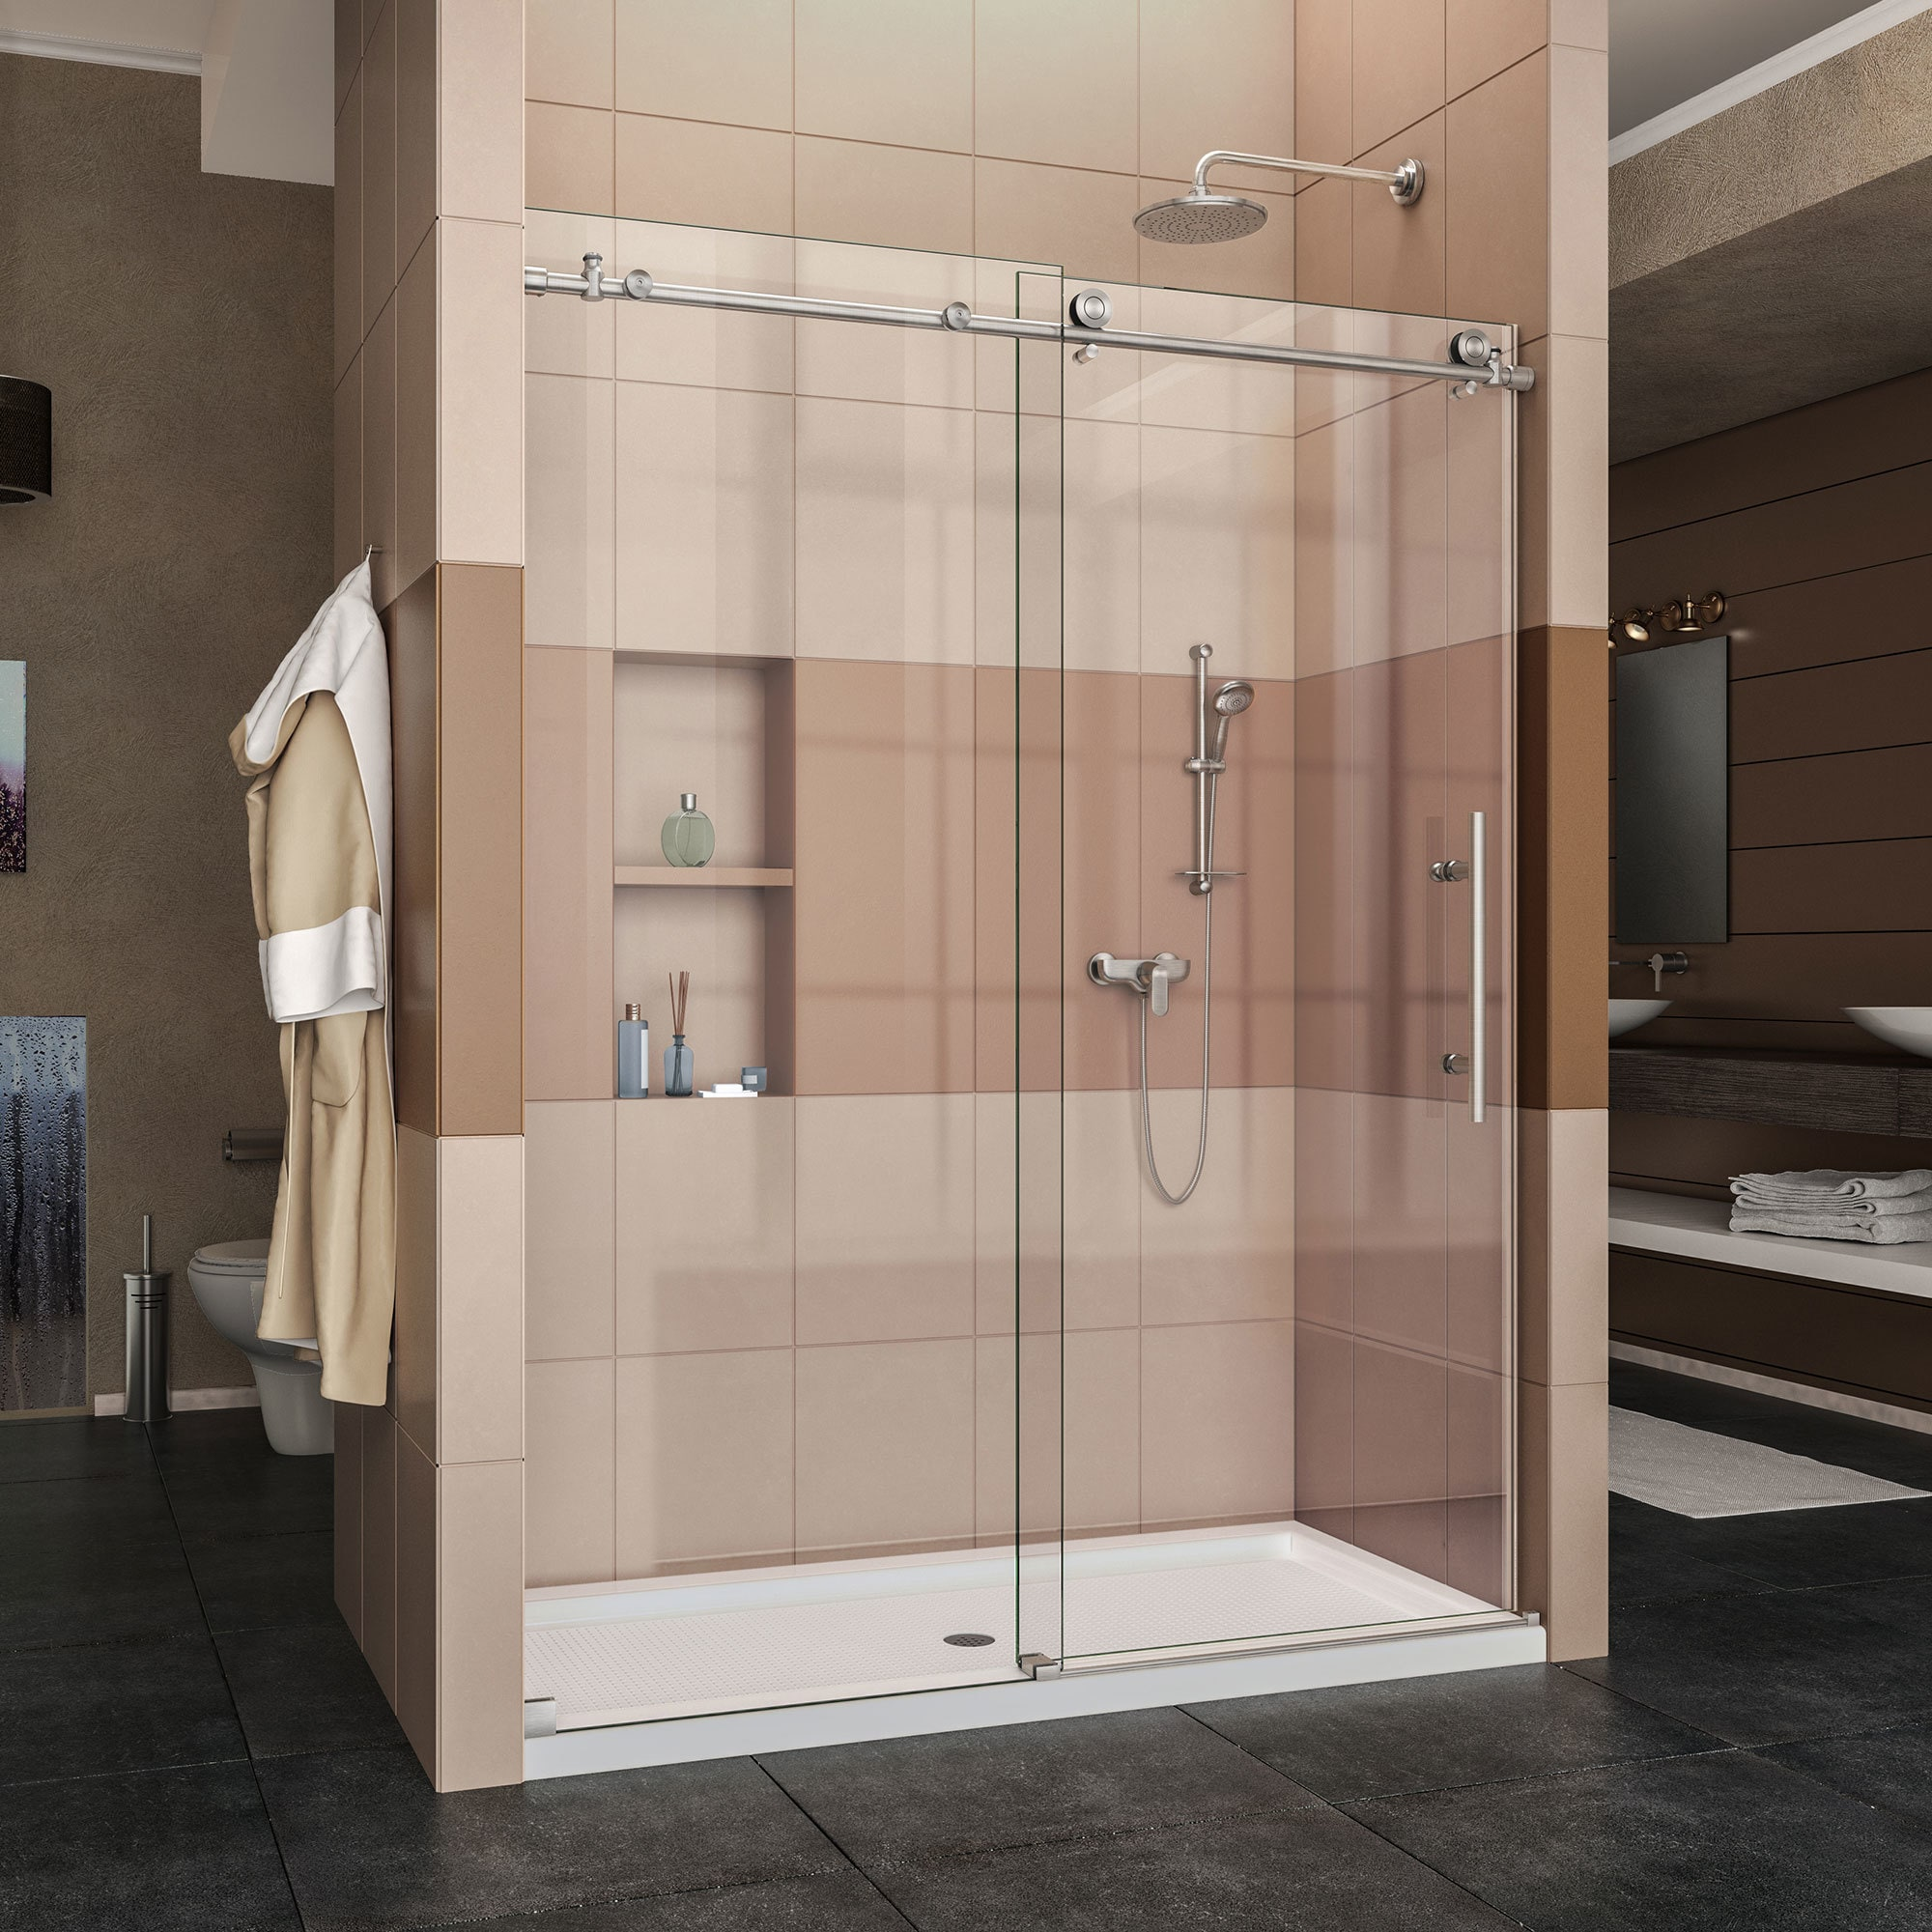 doors serenity search system deluxe pars door sliding glass shower